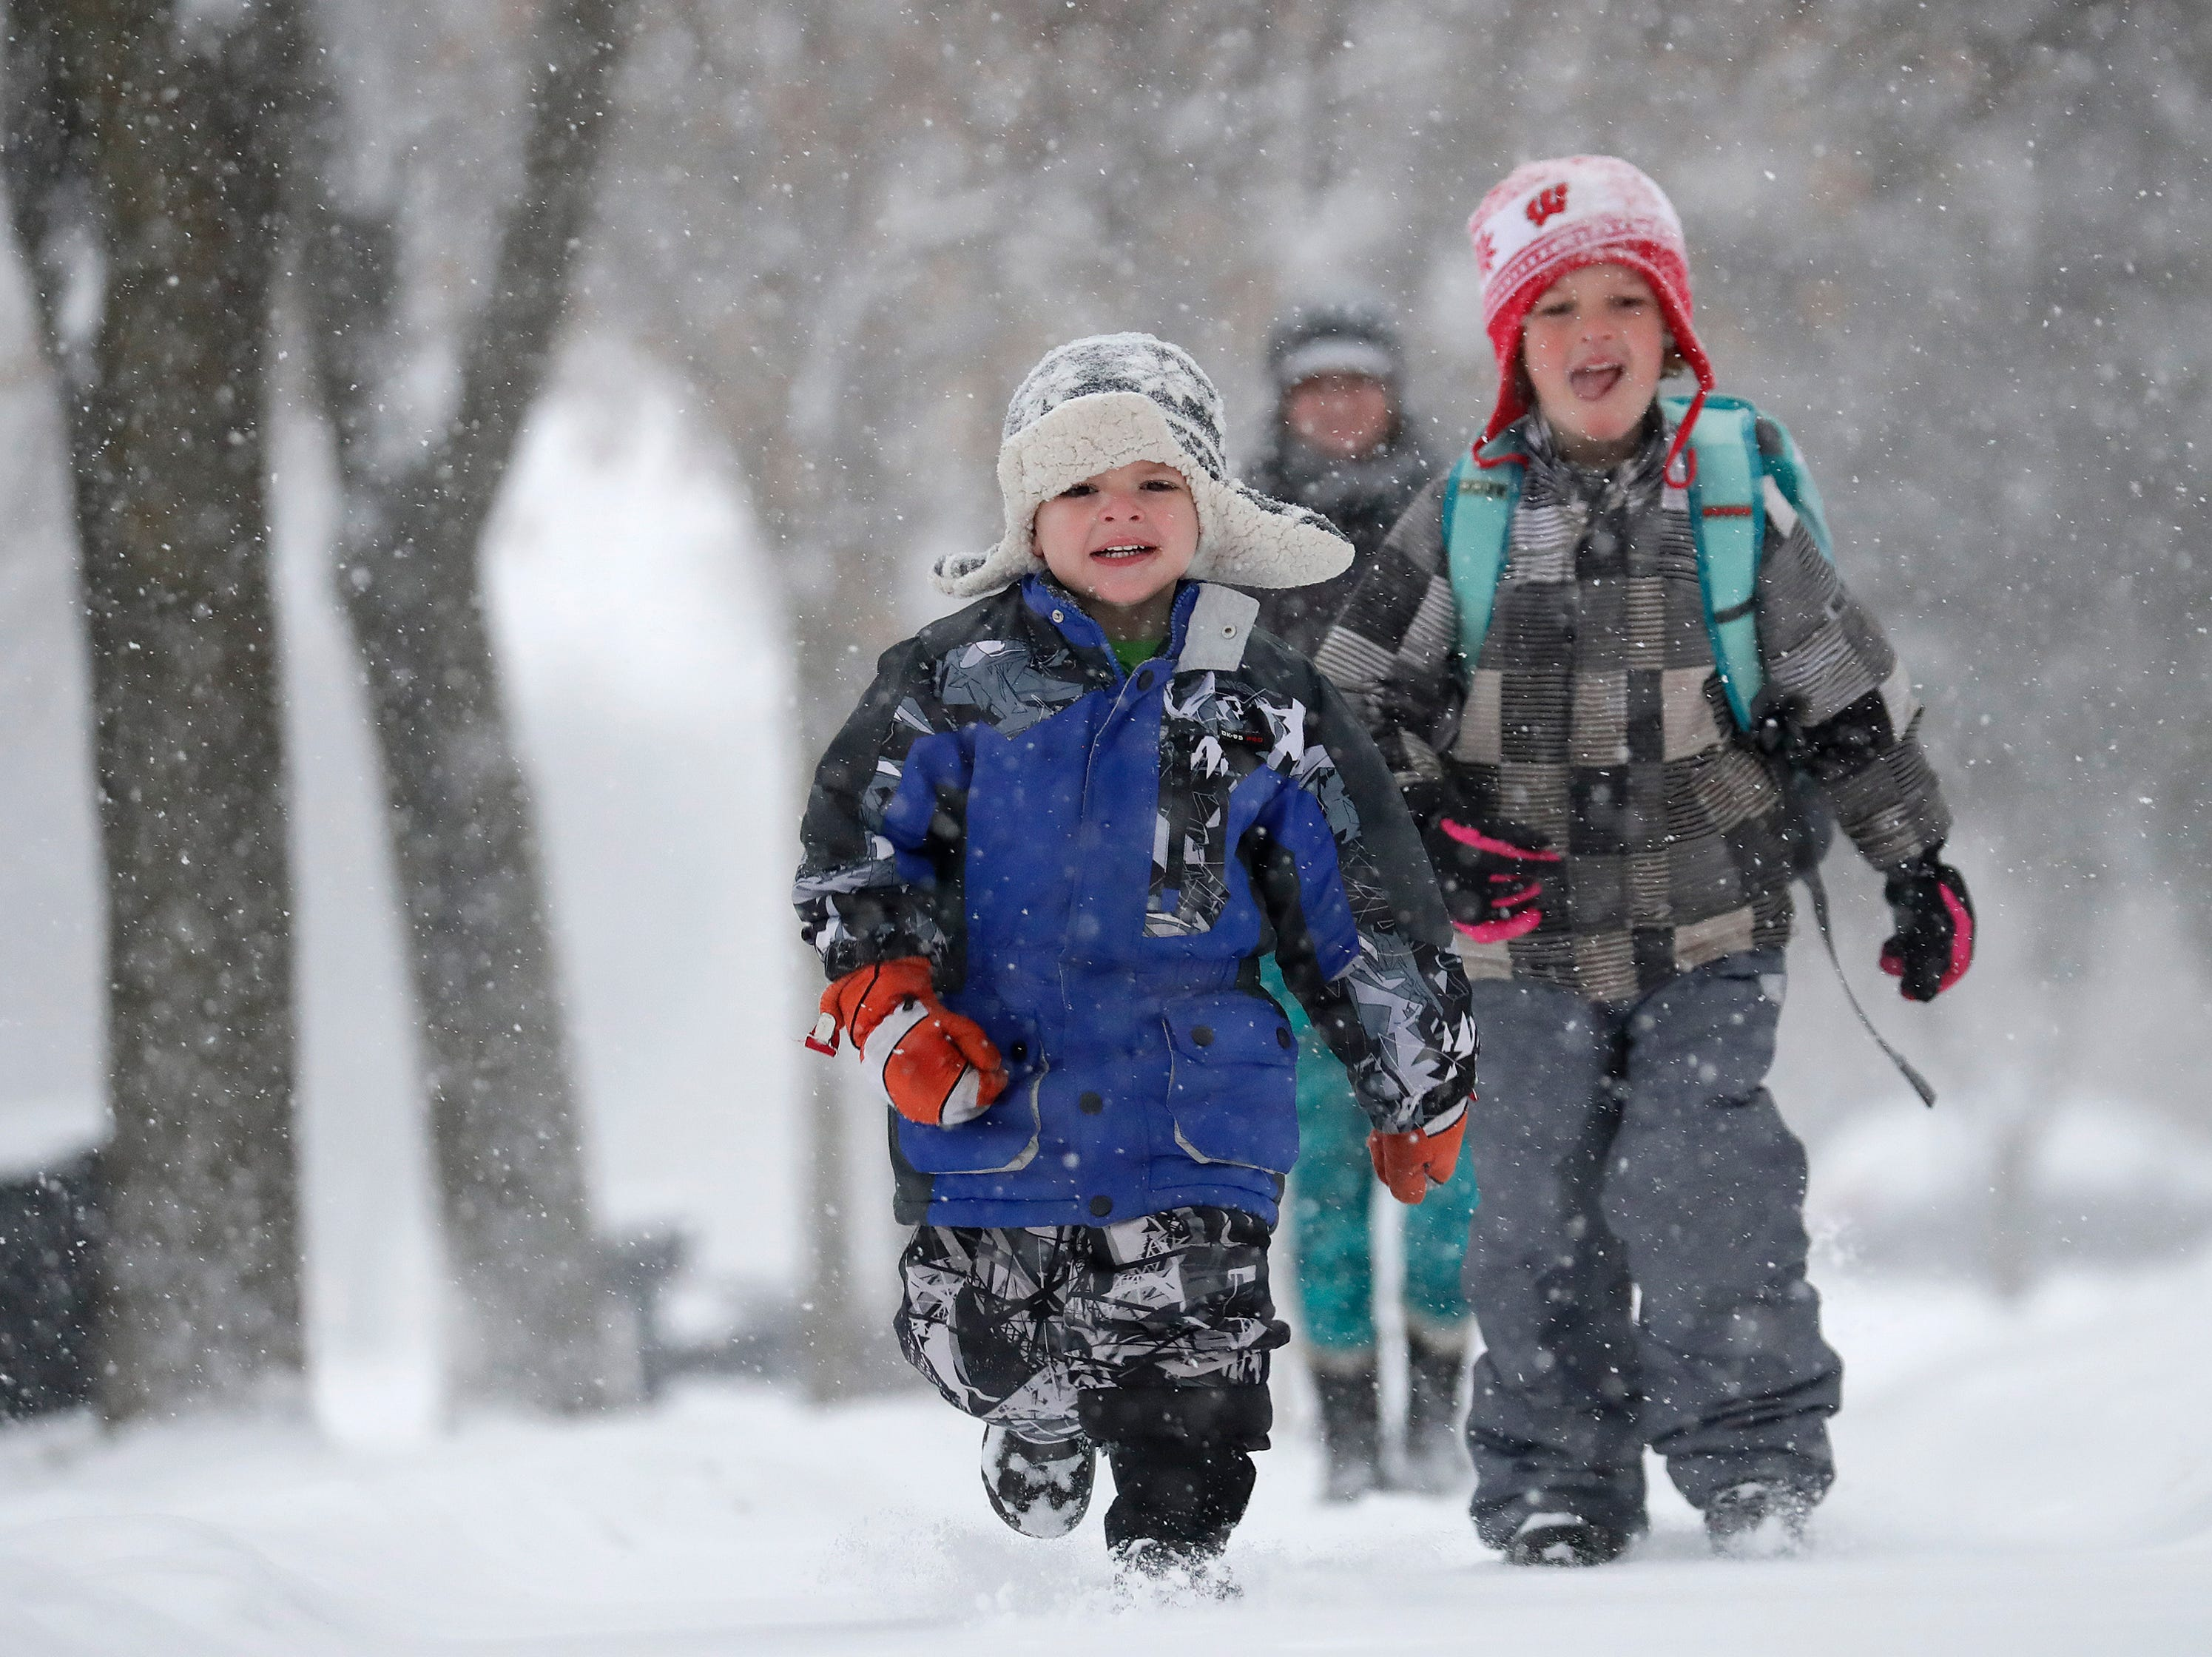 Carter Dench, left, 4, and his brother Darian, 6, enjoy the snowfall as they head to school with their mother Abbie Dench during a snowstorm Wednesday, January 23, 2019, in Appleton, Wis. 